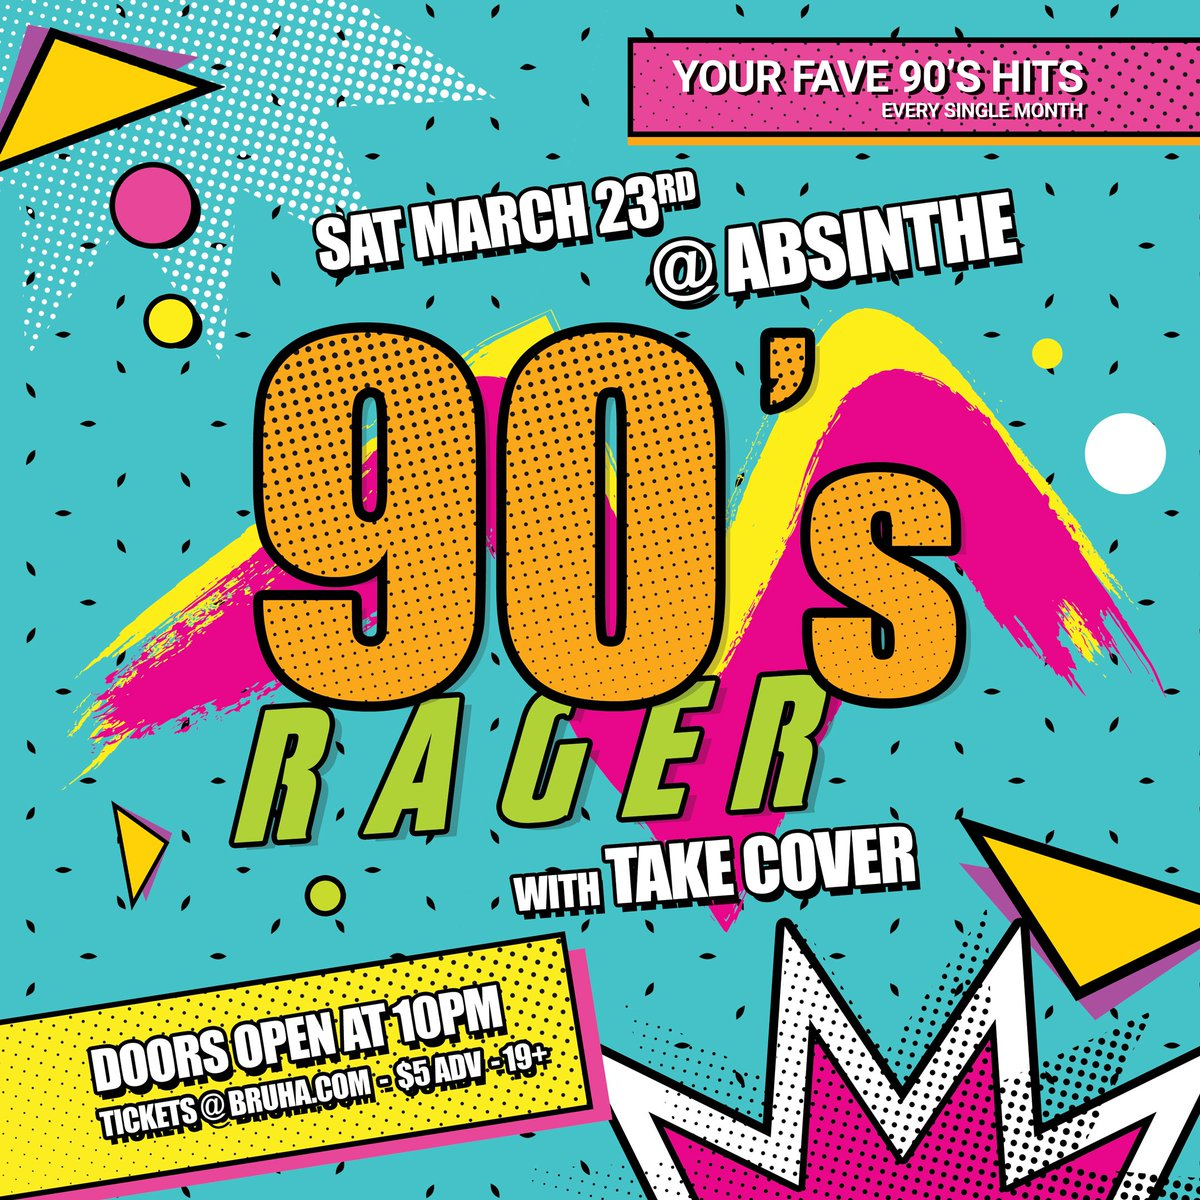 TONIGHT! Grab your Pogs and LA Gears and prepare for our monthly 90'S RAGER with @takecoverlive playing your fave 90's hits all night. Plus DJ PARTY JESUS spinning the freshest tunes this side of Napster. Last minute $5 tickets here: http://bit.ly/2HzXfmE